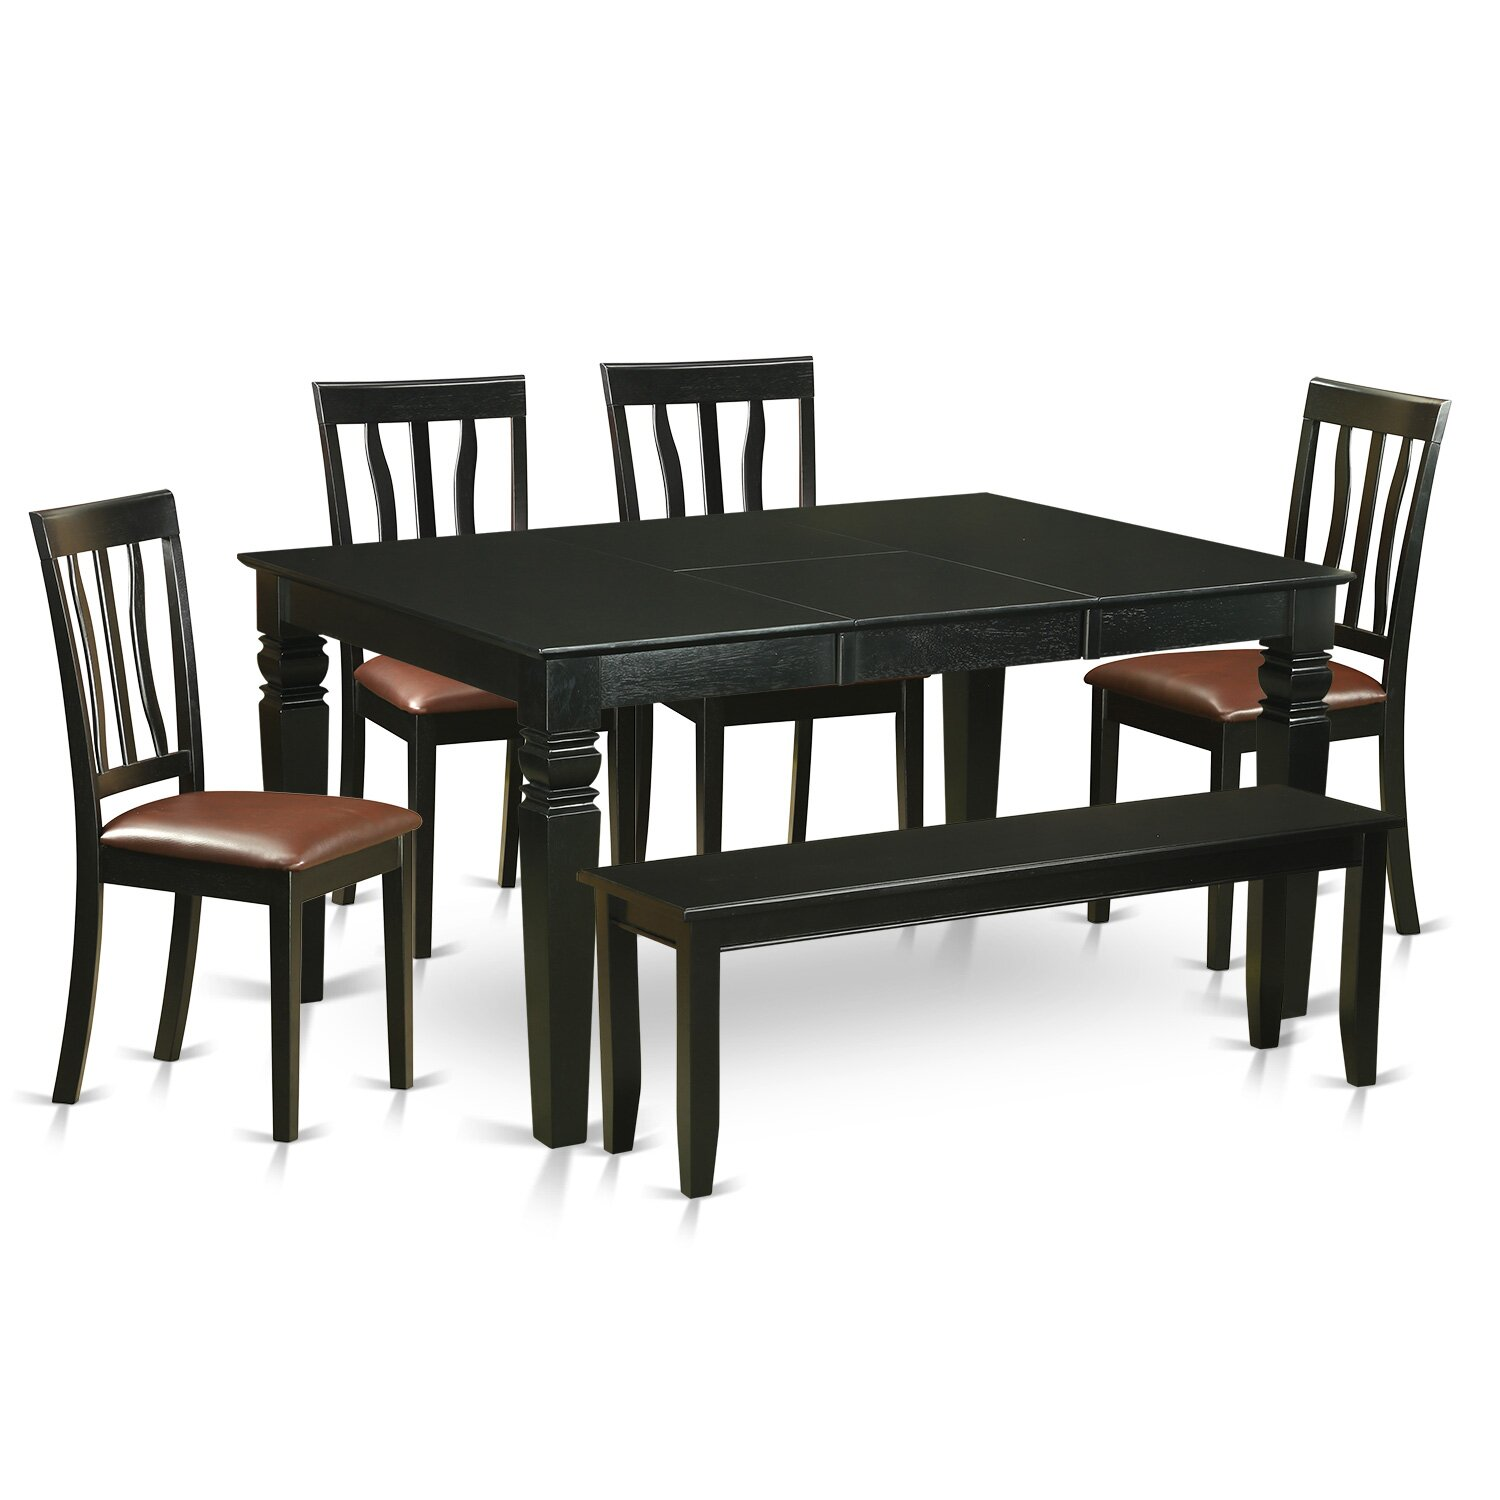 Wooden importers weston 6 piece dining set wayfair for Dining room table and 4 chairs